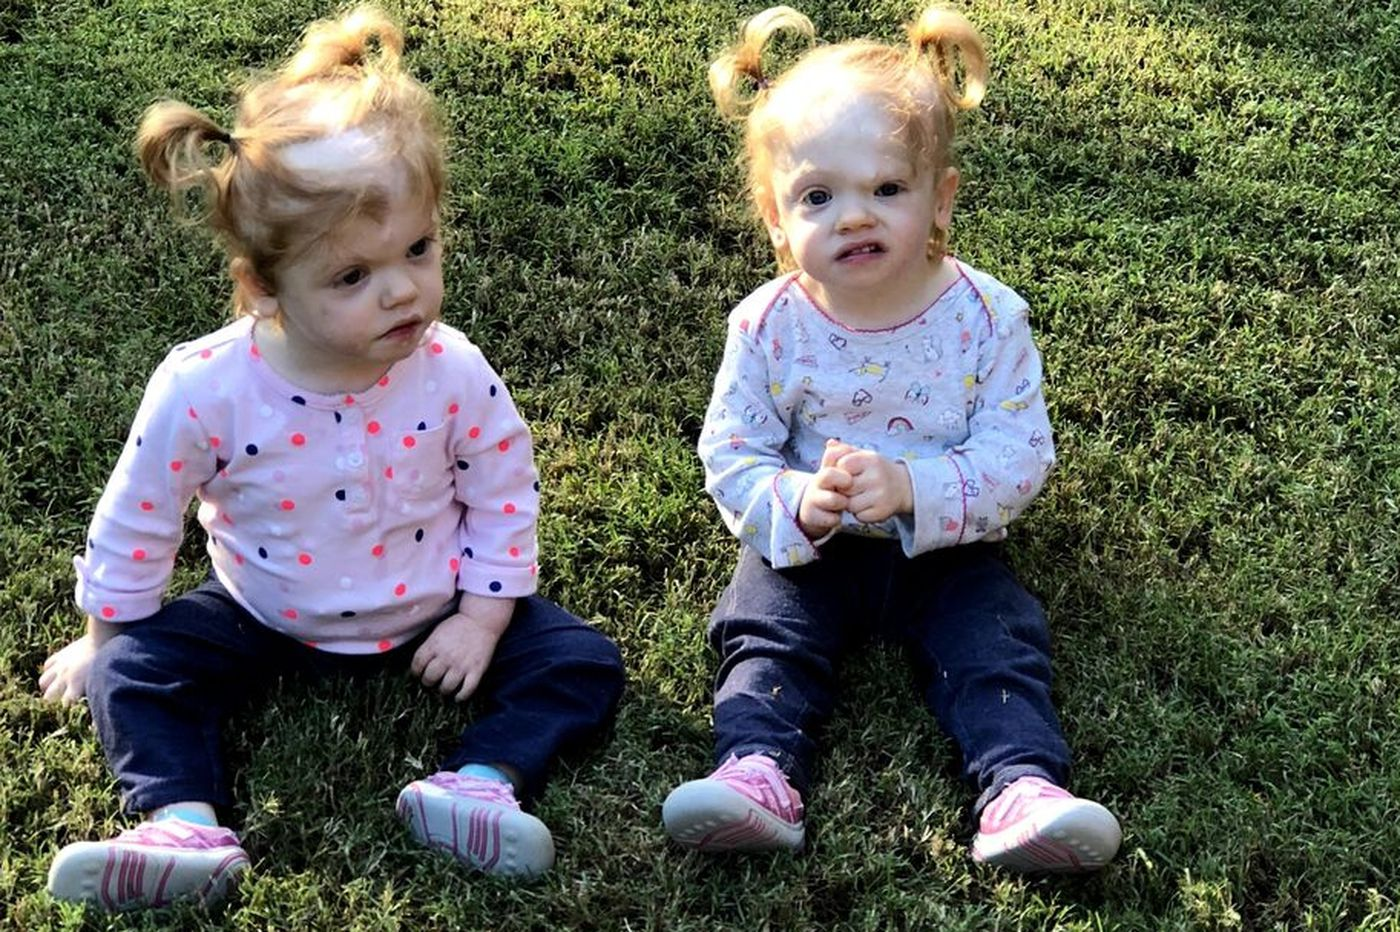 Twins born joined at the head exceeding expectations 19 months after separation at CHOP